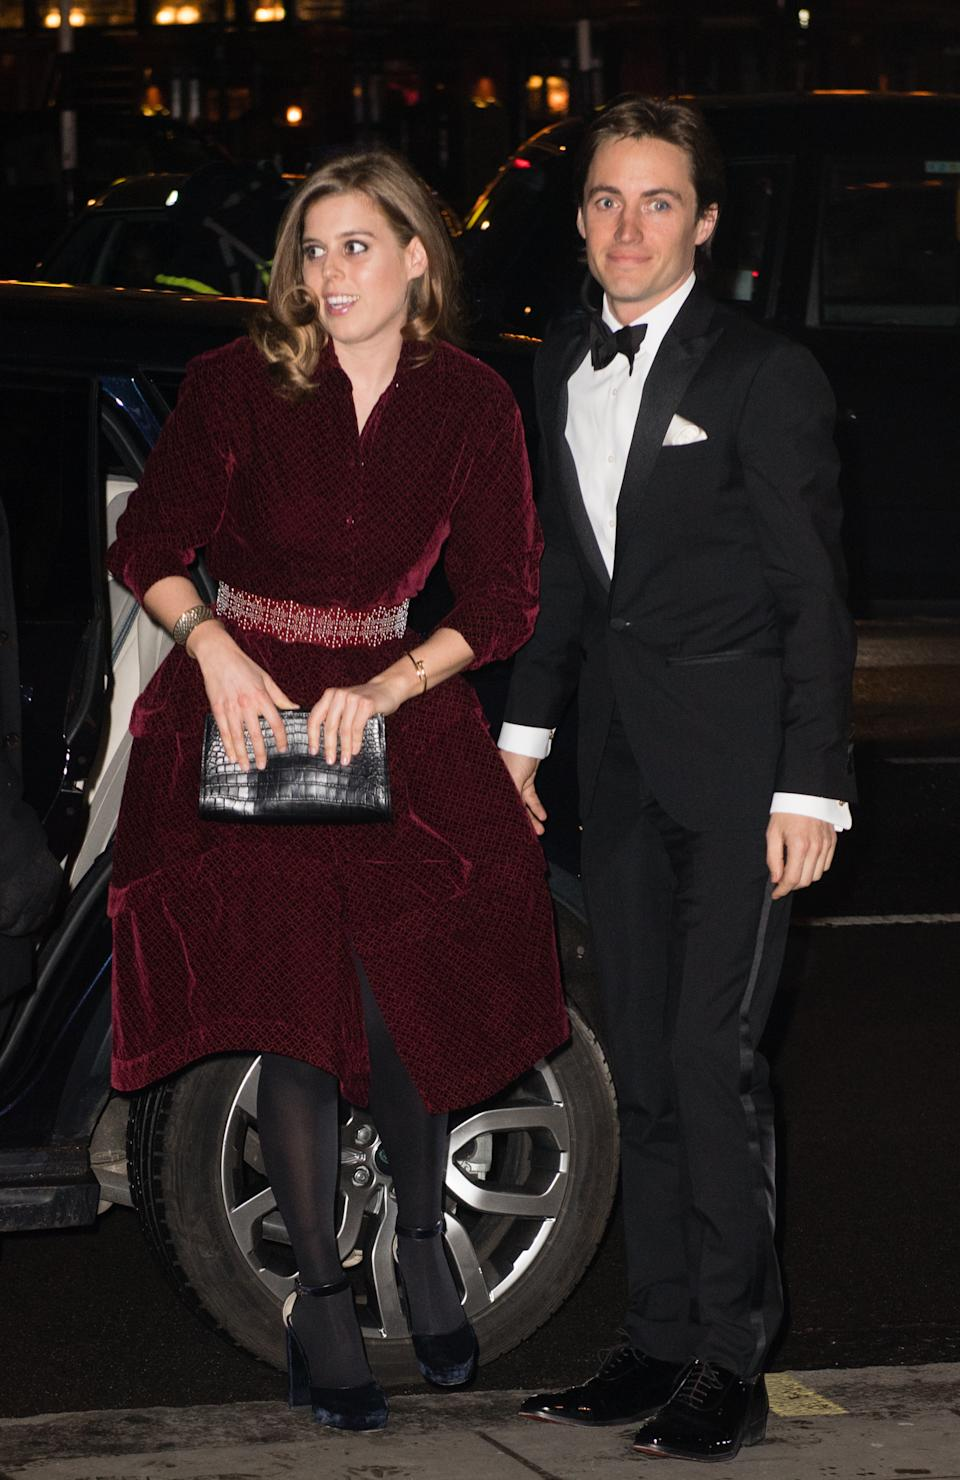 Princess Beatrice of York and Edoardo Mapelli Mozzi attend the Portrait Gala 2019 at the National Portrait Gallery on March 12, 2019 in London, England